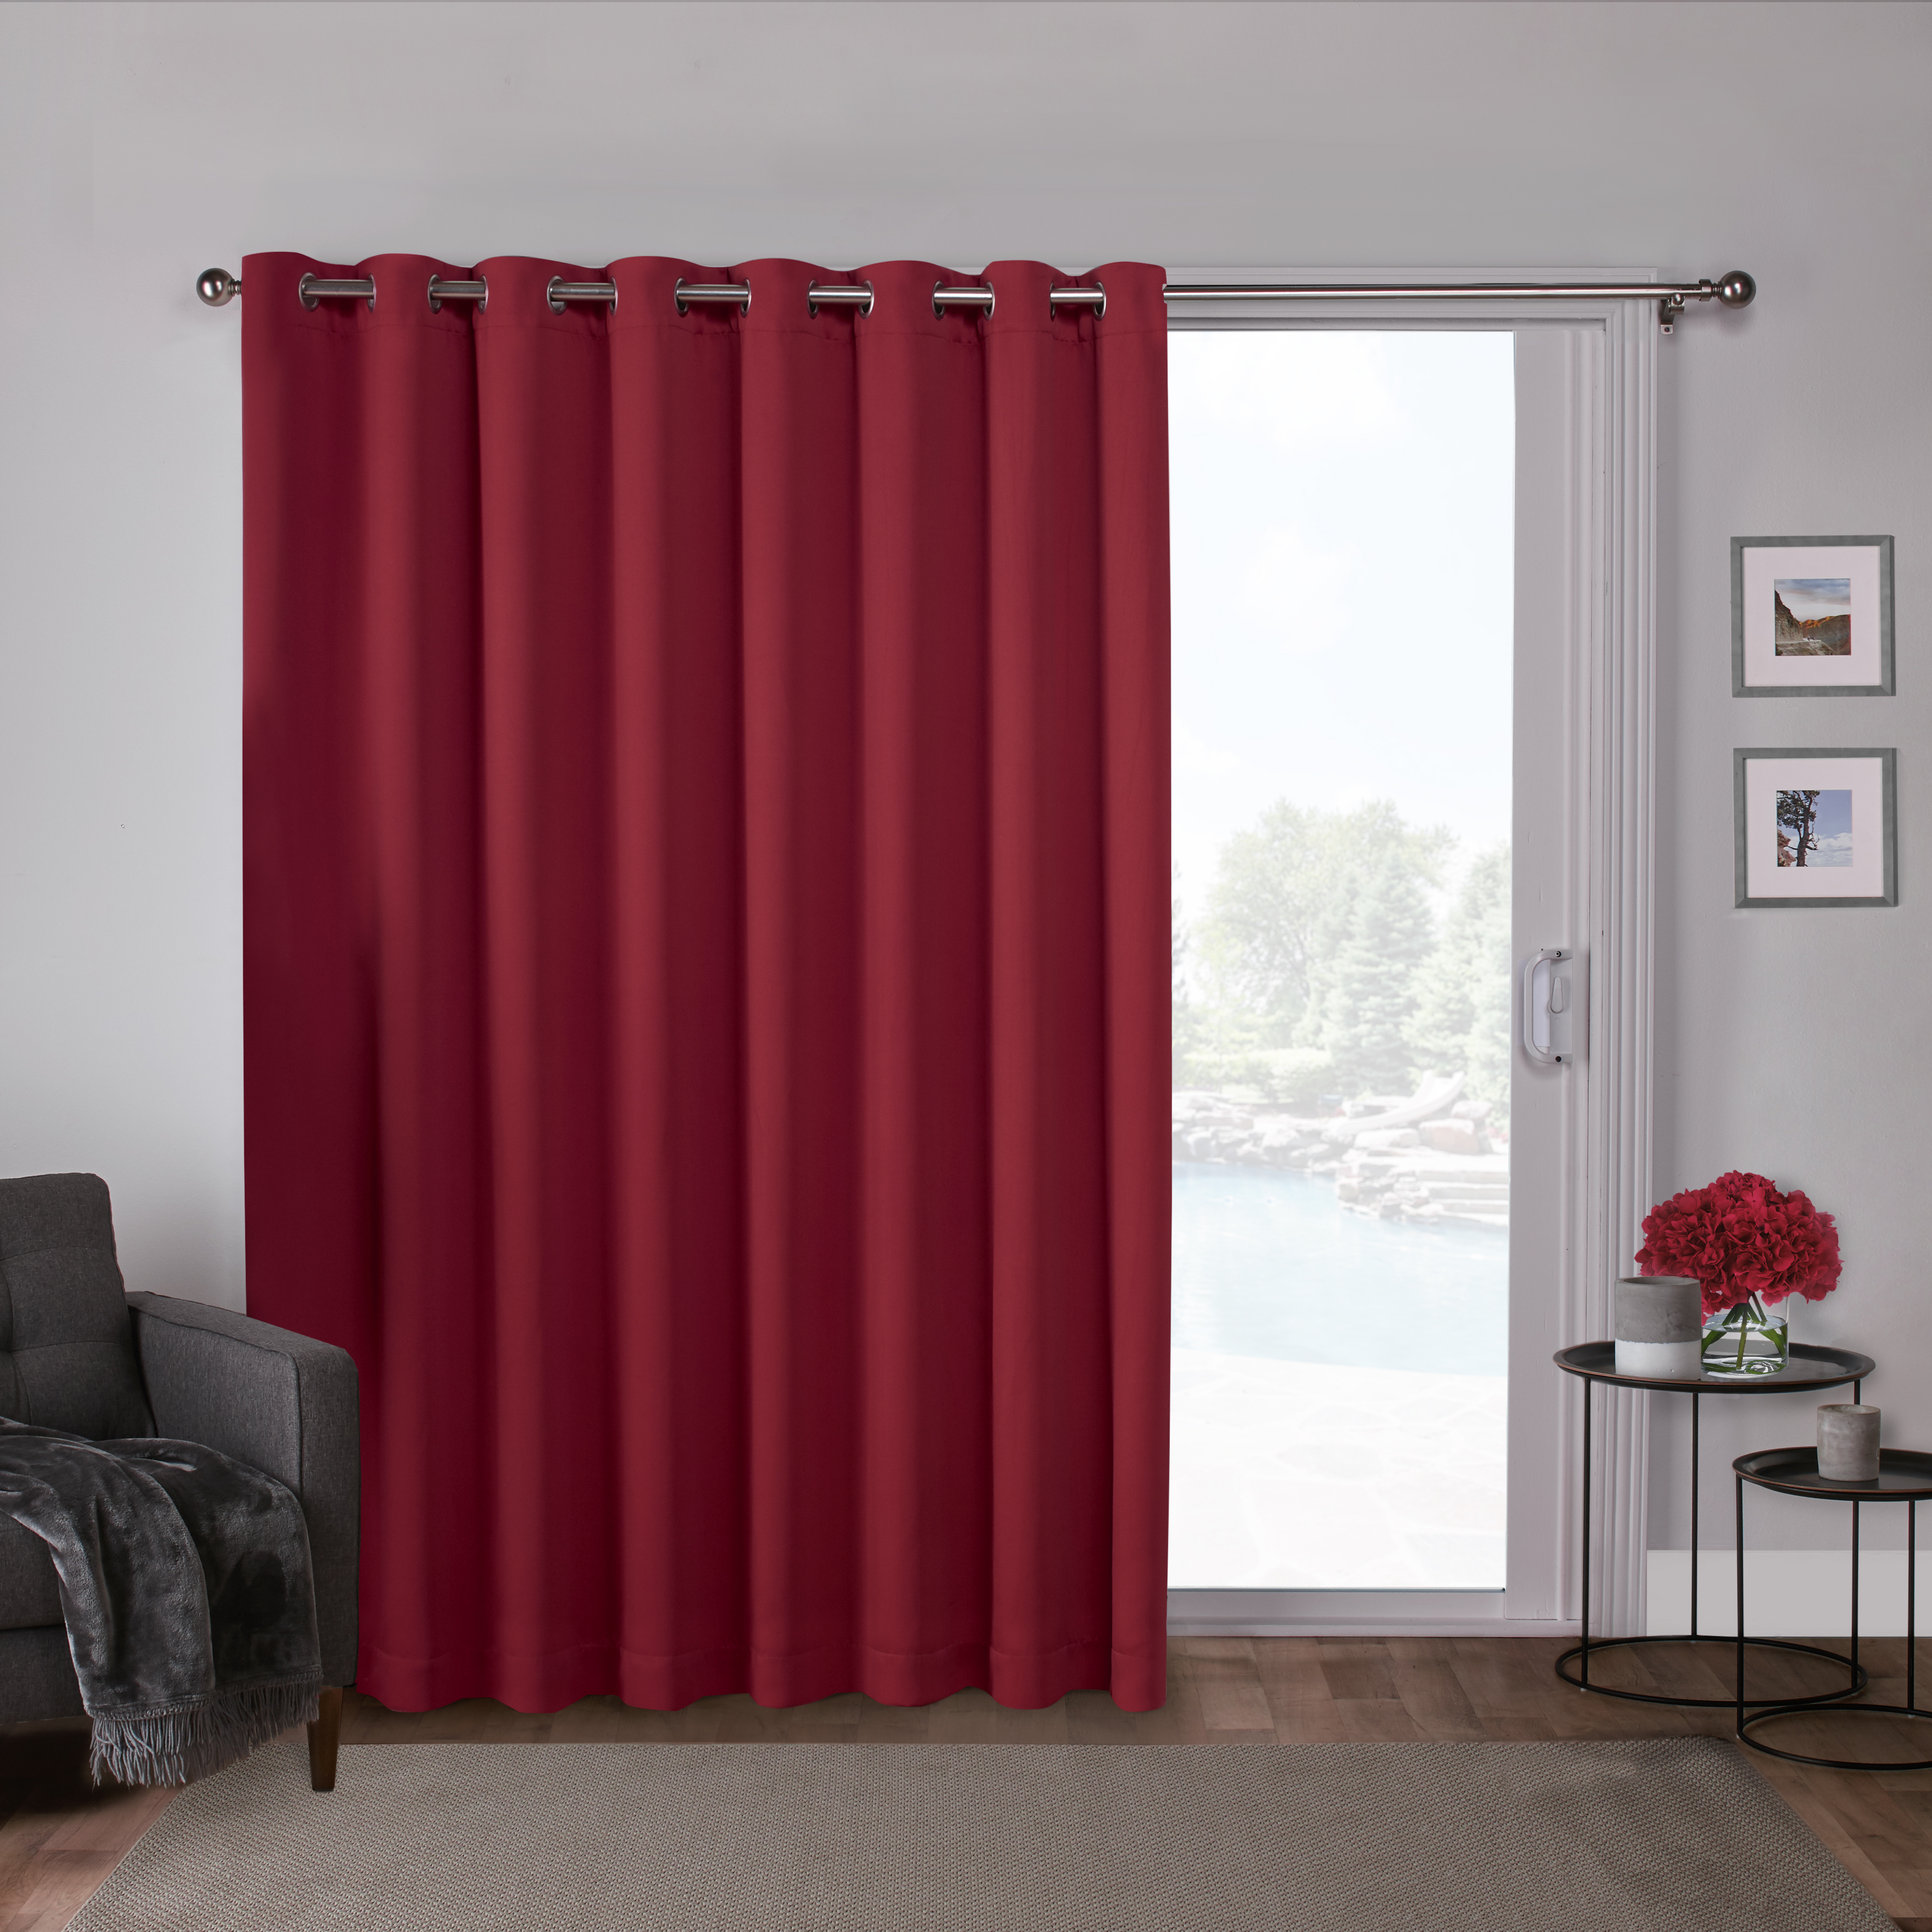 Exclusive Home Curtains 1 Pack Sateen Blackout Wide Patio Grommet Top Single Curtain Panel For Patio Grommet Top Single Curtain Panels (View 17 of 20)